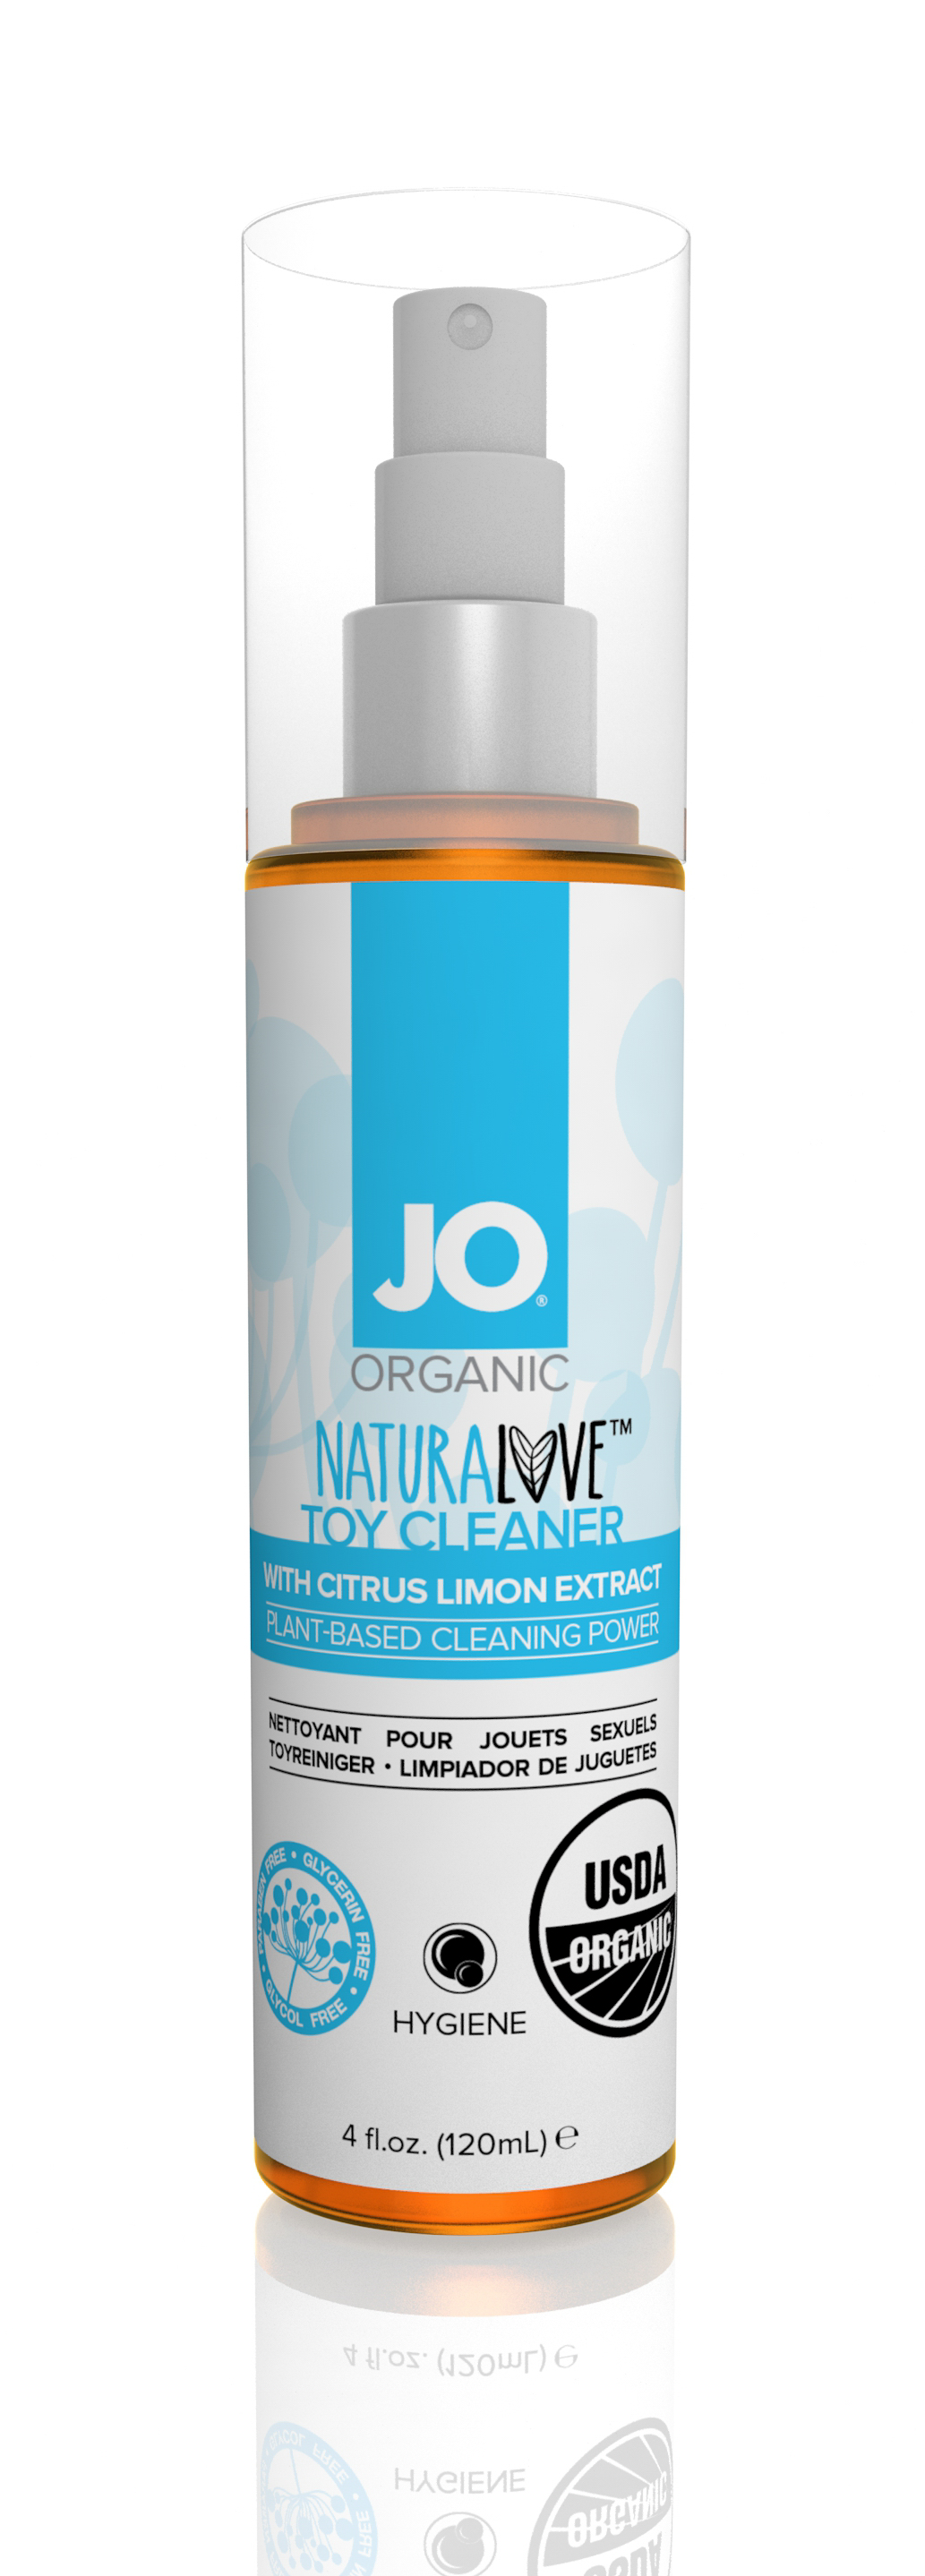 JO Naturalove Toy Cleaner